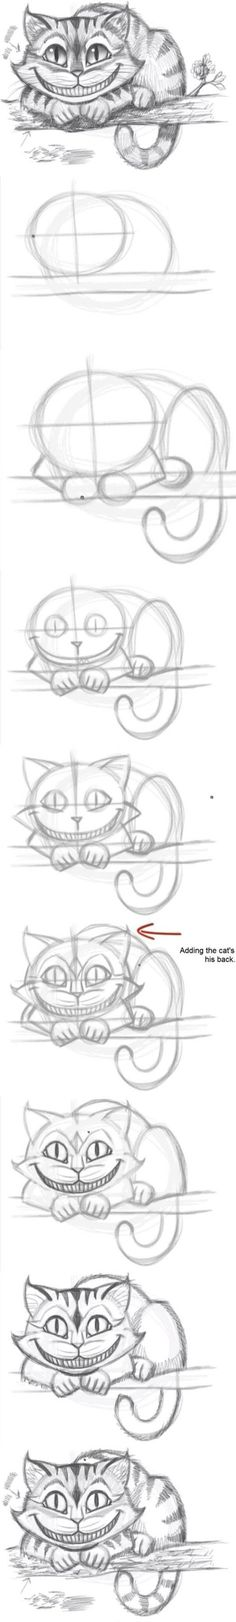 How to Draw the Cheshire Cat by usefuldiy.